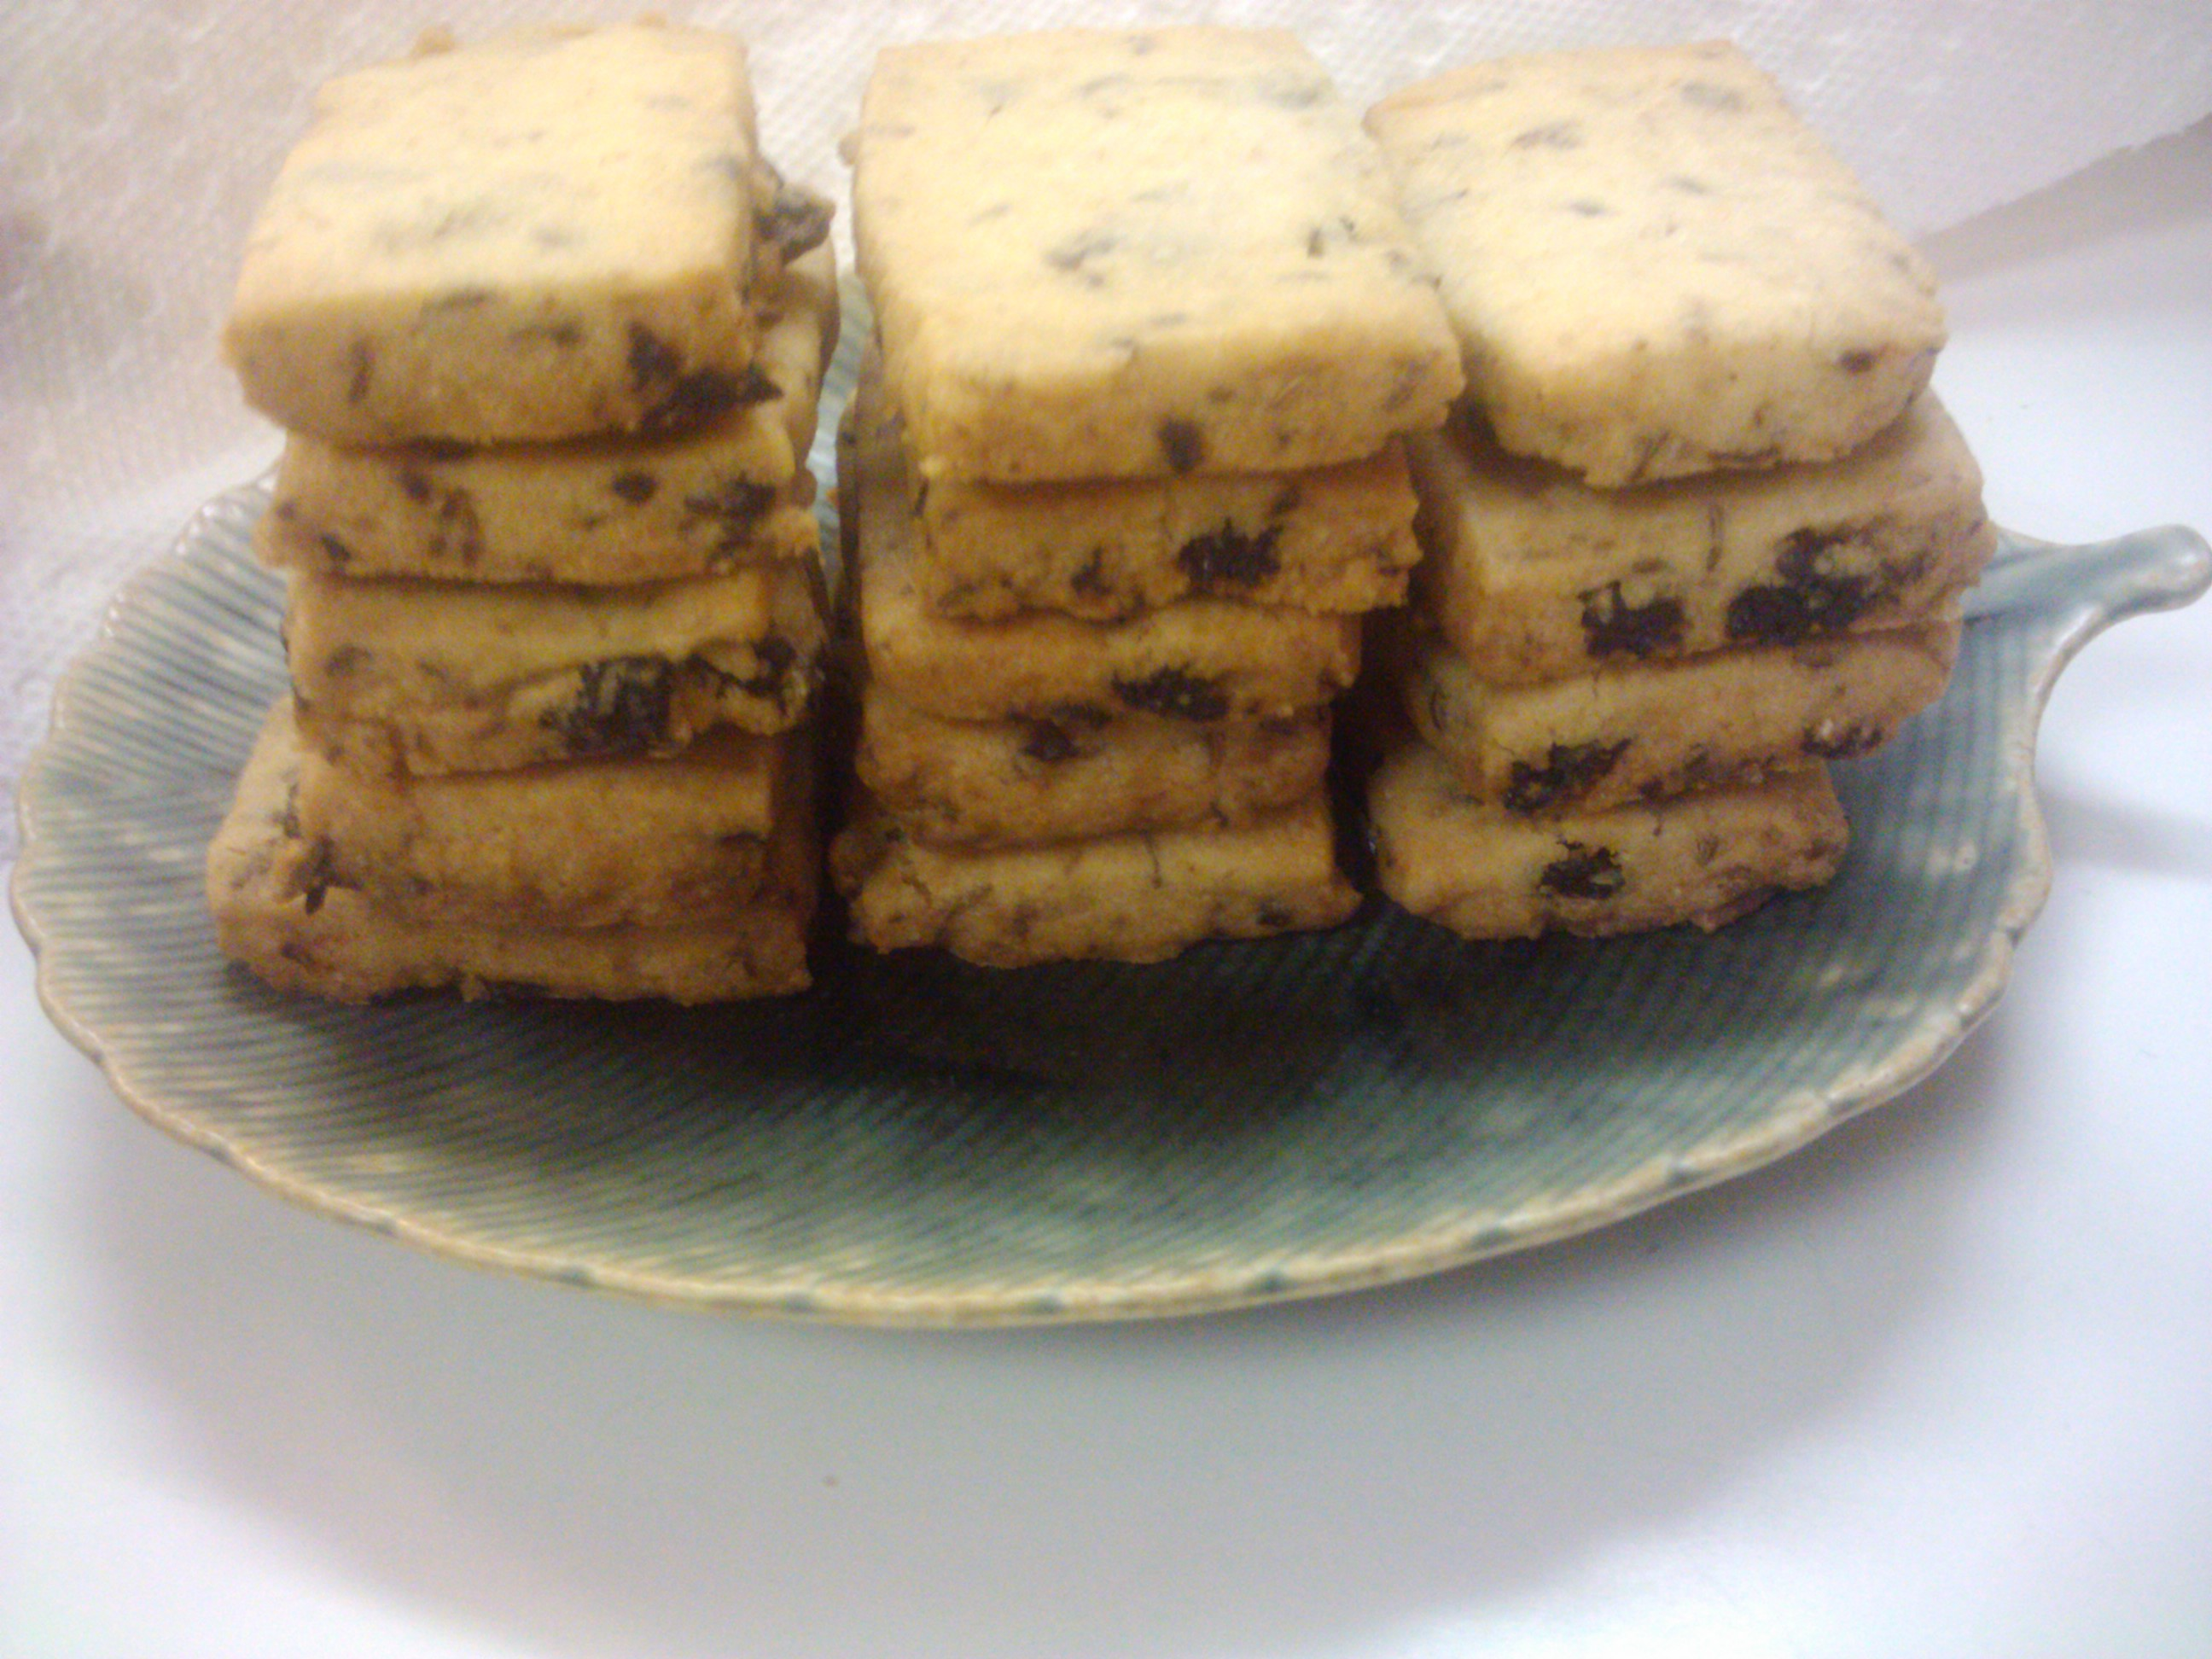 Currant-Caraway Shortbread